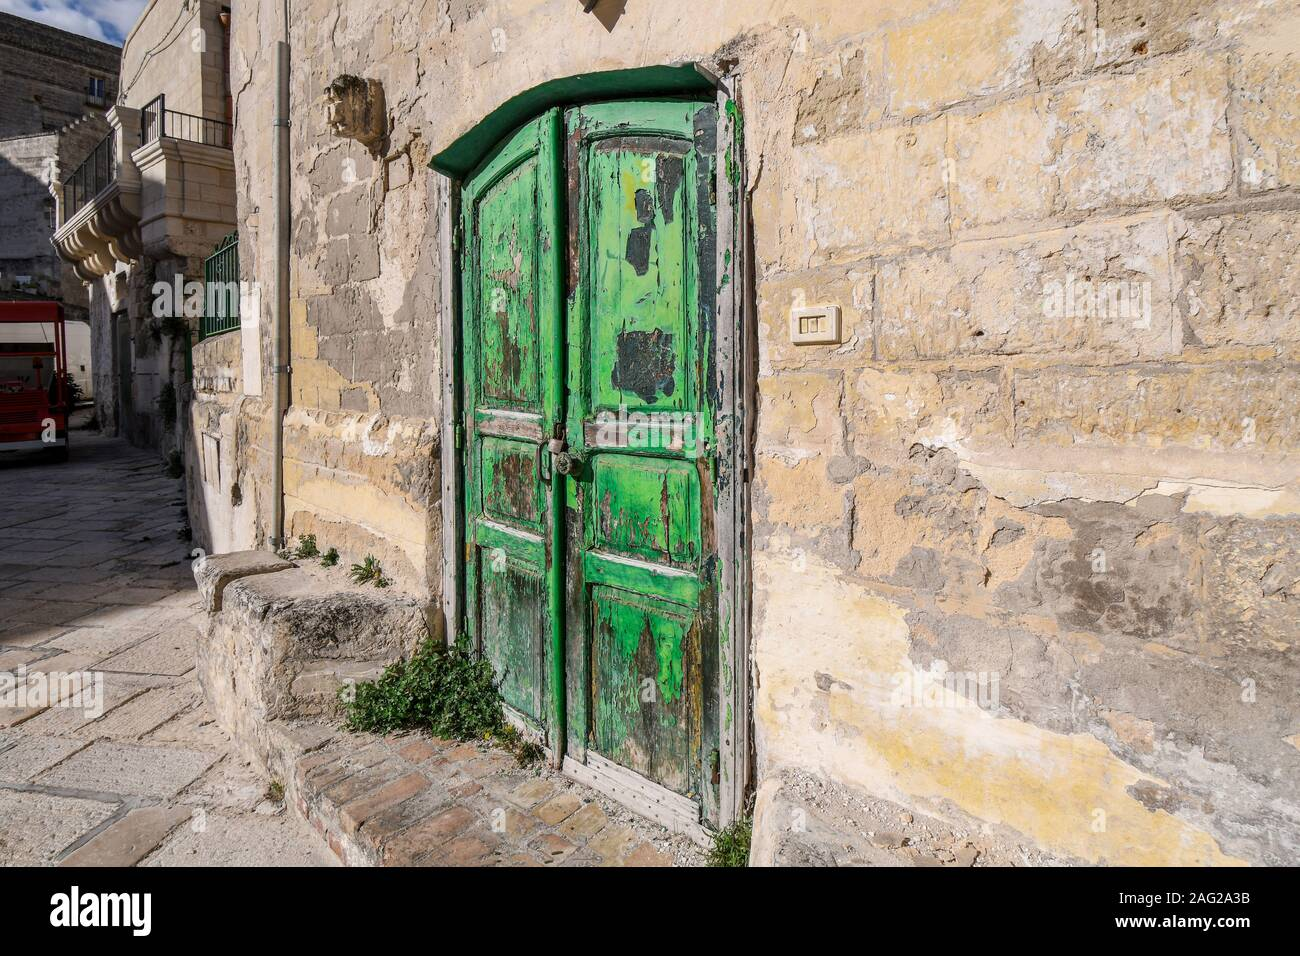 A brilliant, bright green, weathered wooden doorway into a stone building in the ancient city of Matera, Italy, in the Basilicata region. Stock Photo